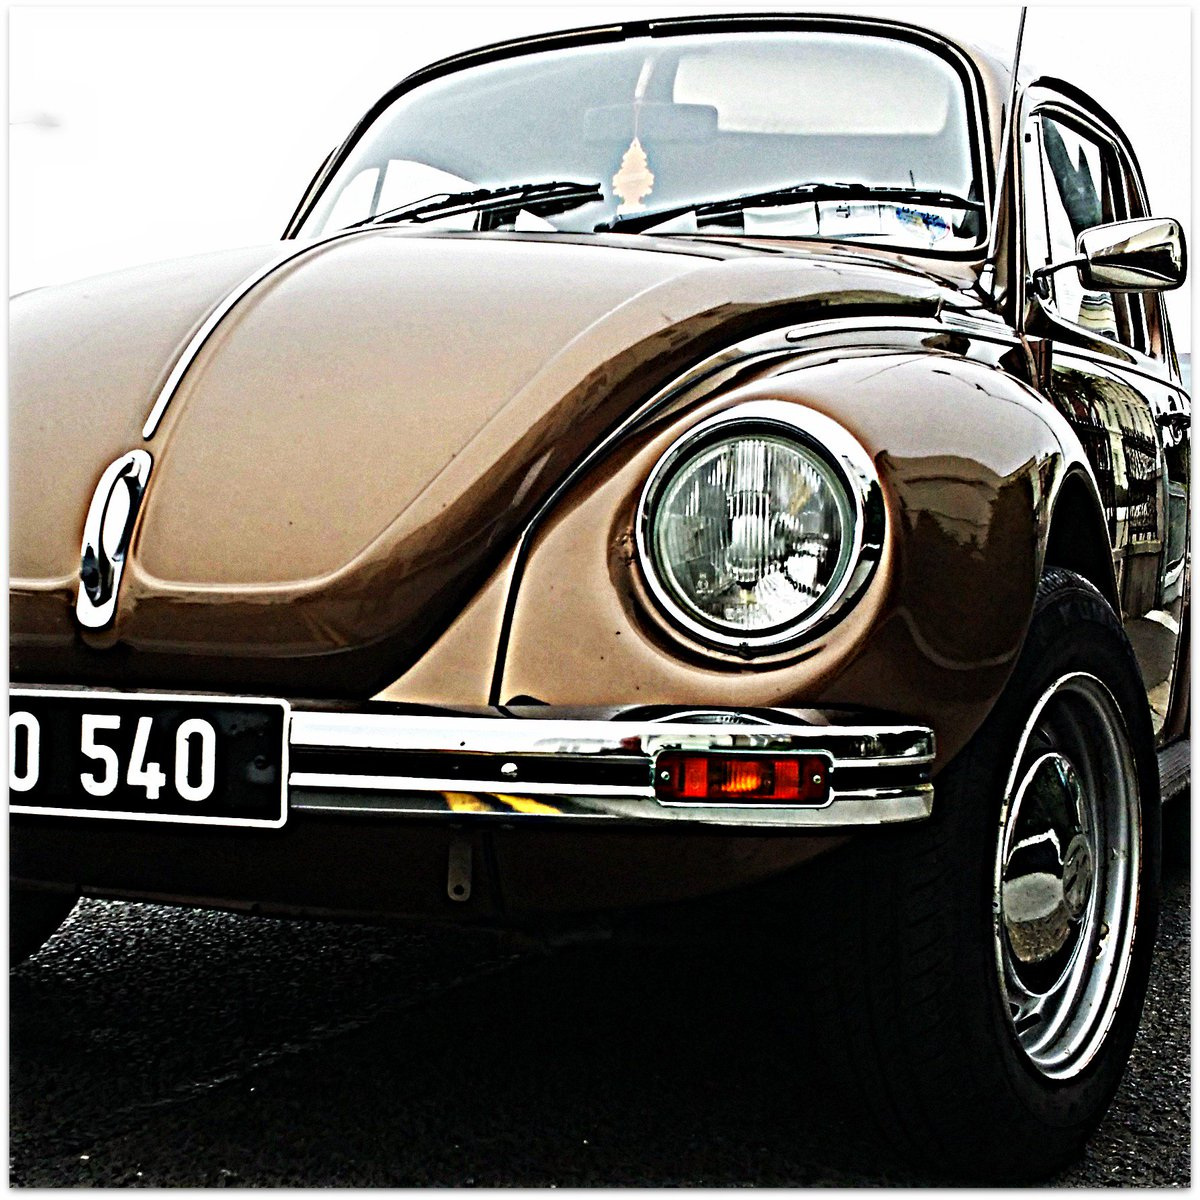 Very Smart Golden Brown 1975 Vw Beetle 1303 Spotted In Dun Laoghaire This Week Volkswagenpic Twitter Fwdwrwl7ro